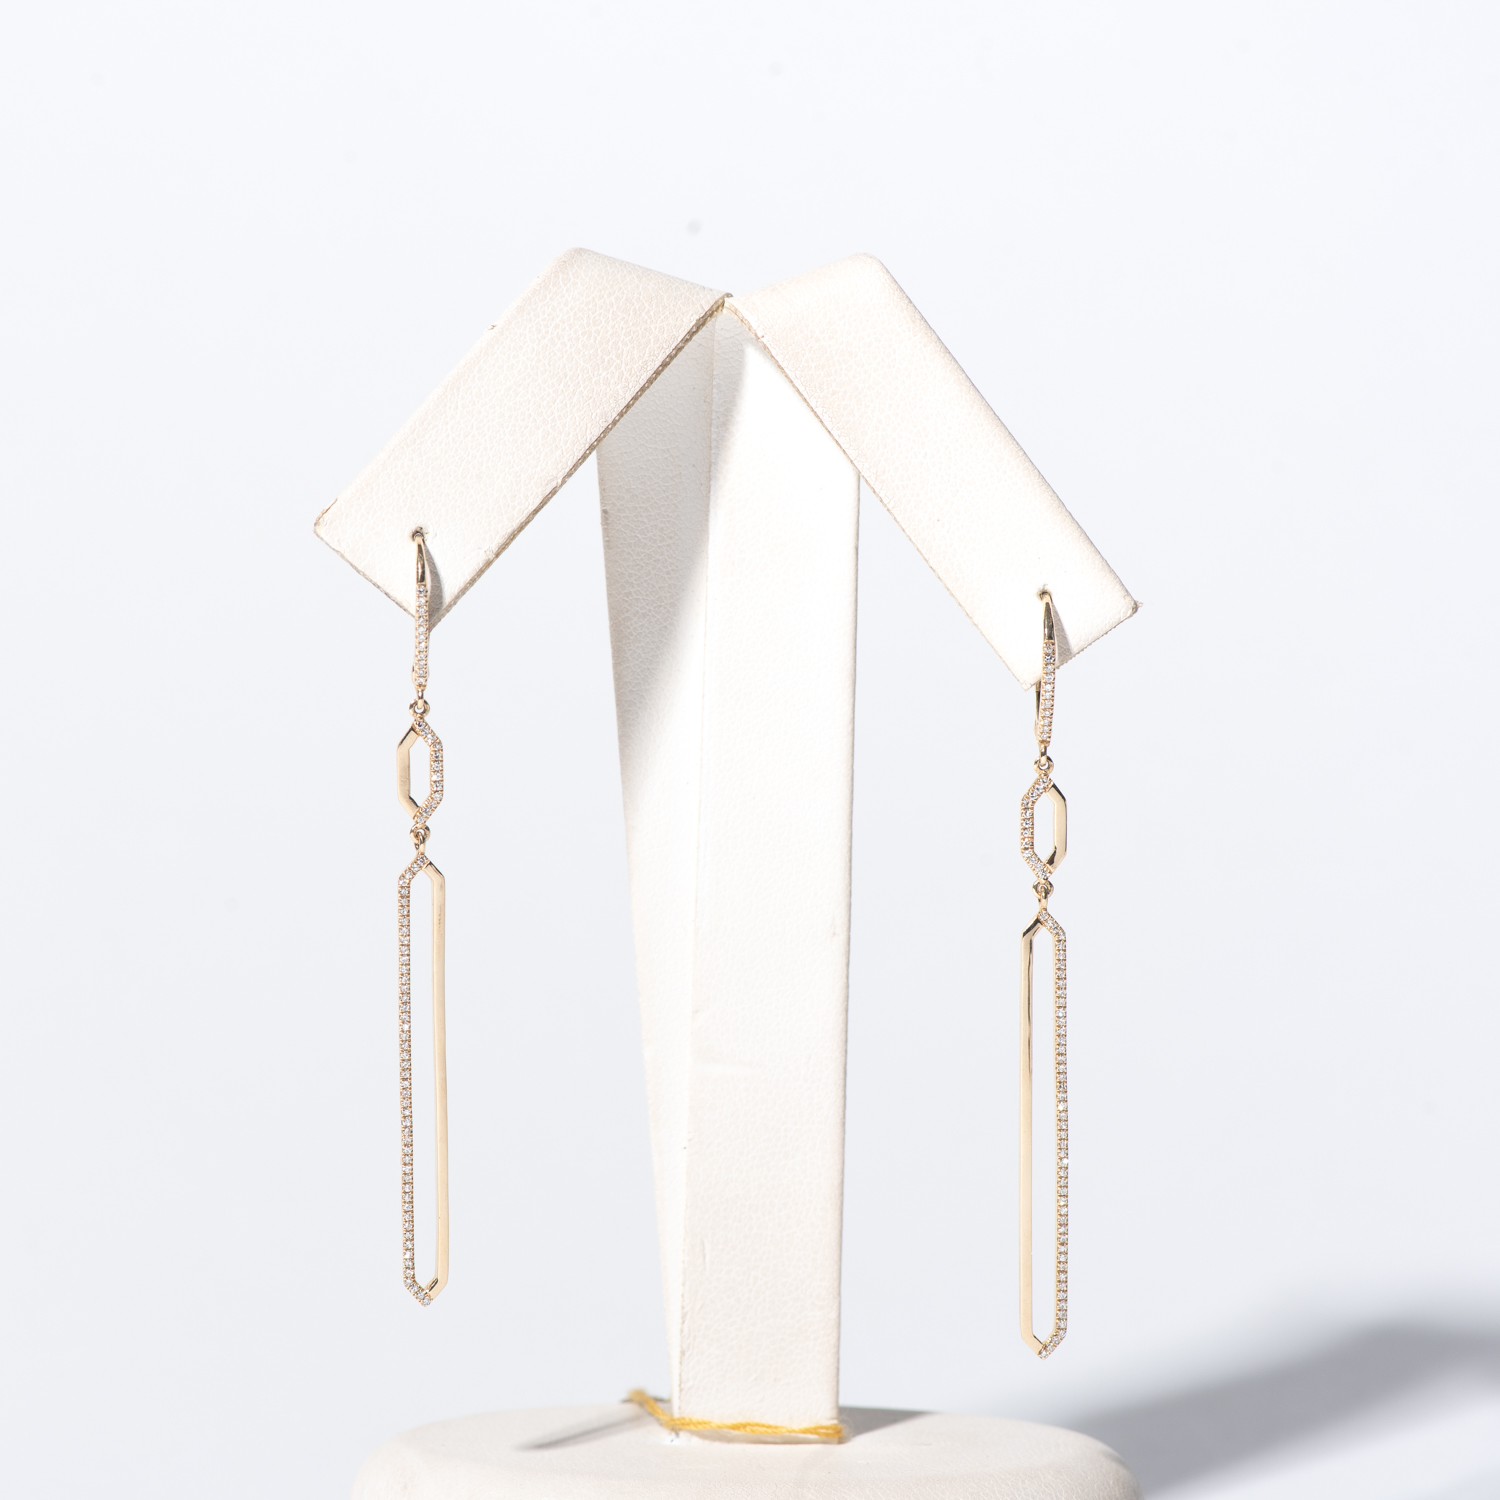 Design Three. - This is dummy text to describe the earrings.